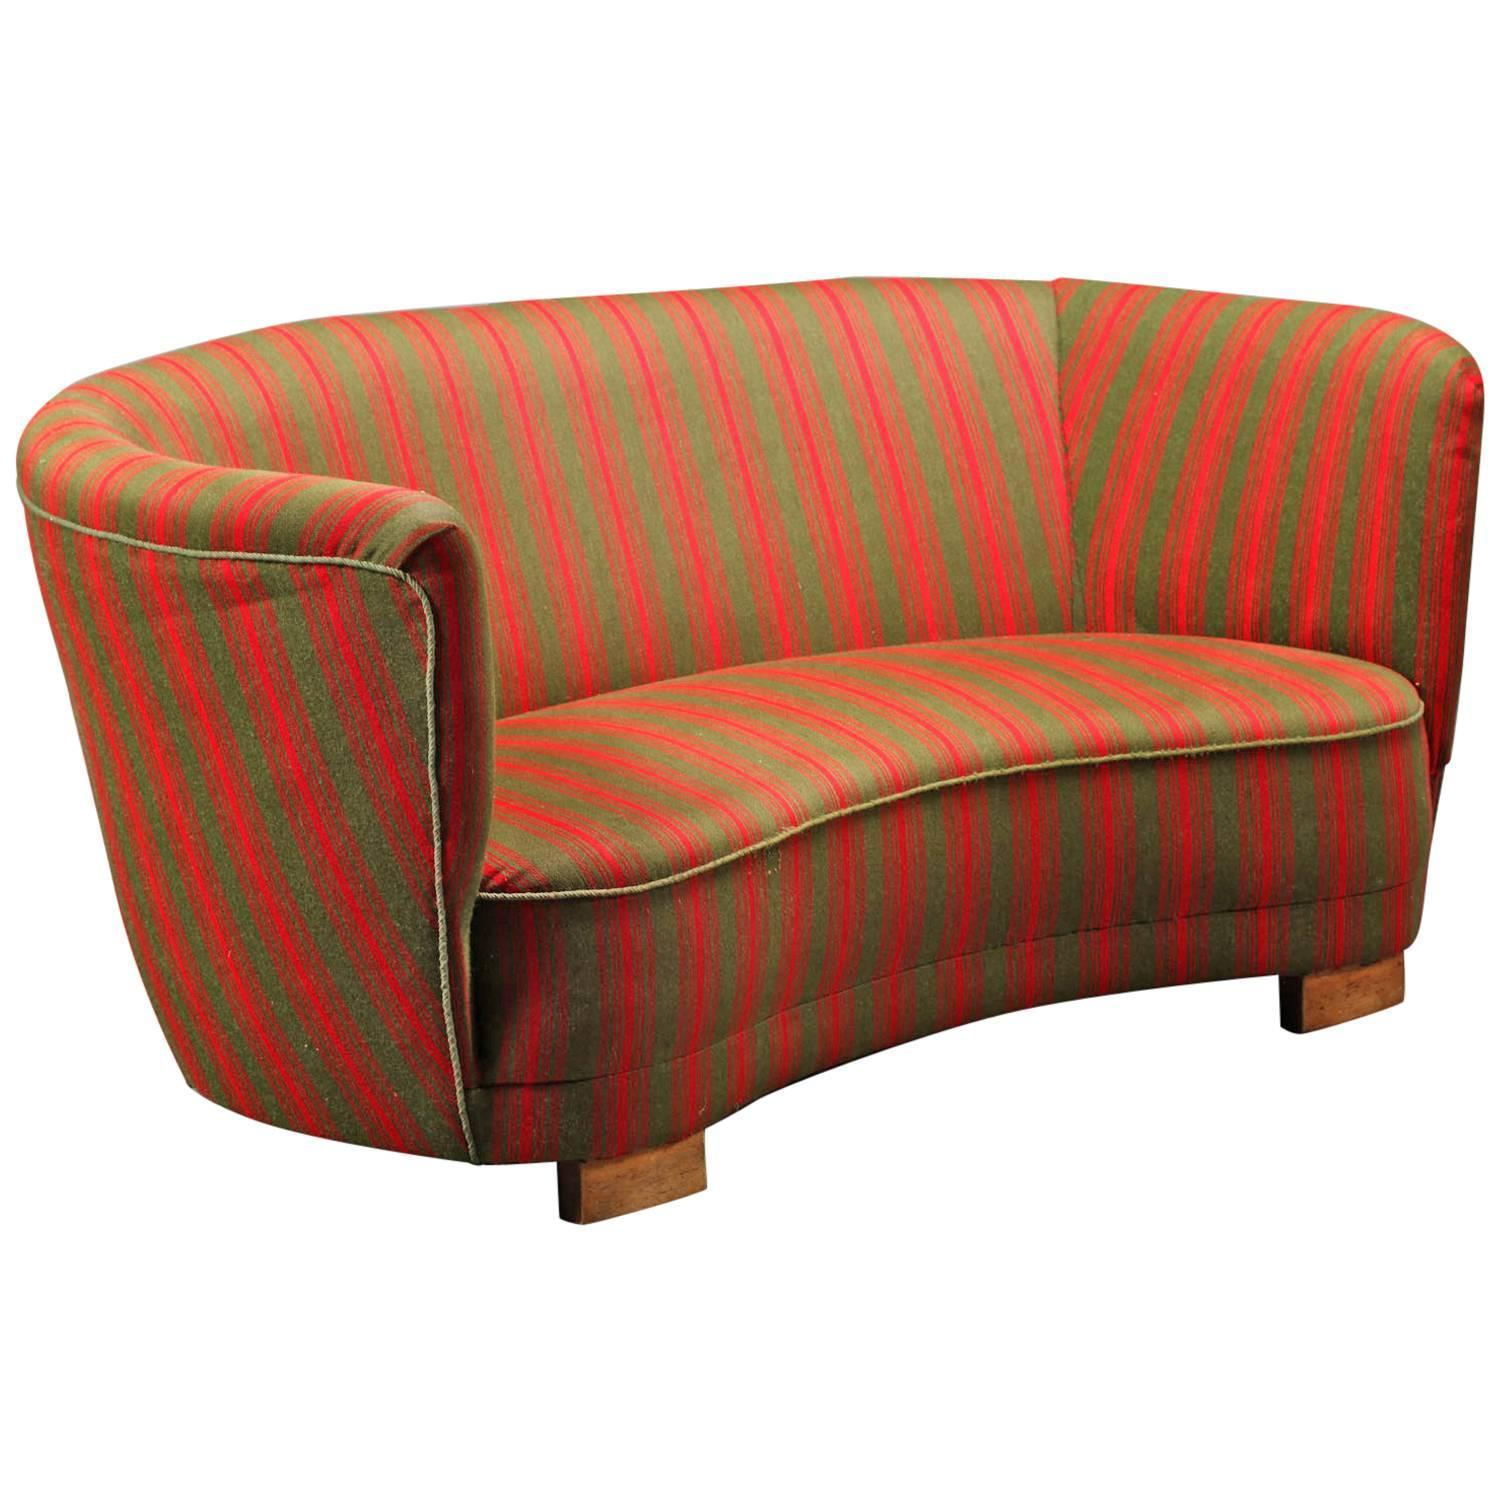 Sofas And Couches On Sale: Danish 1930s-Early 1940s Banana Form Loveseat For Sale At